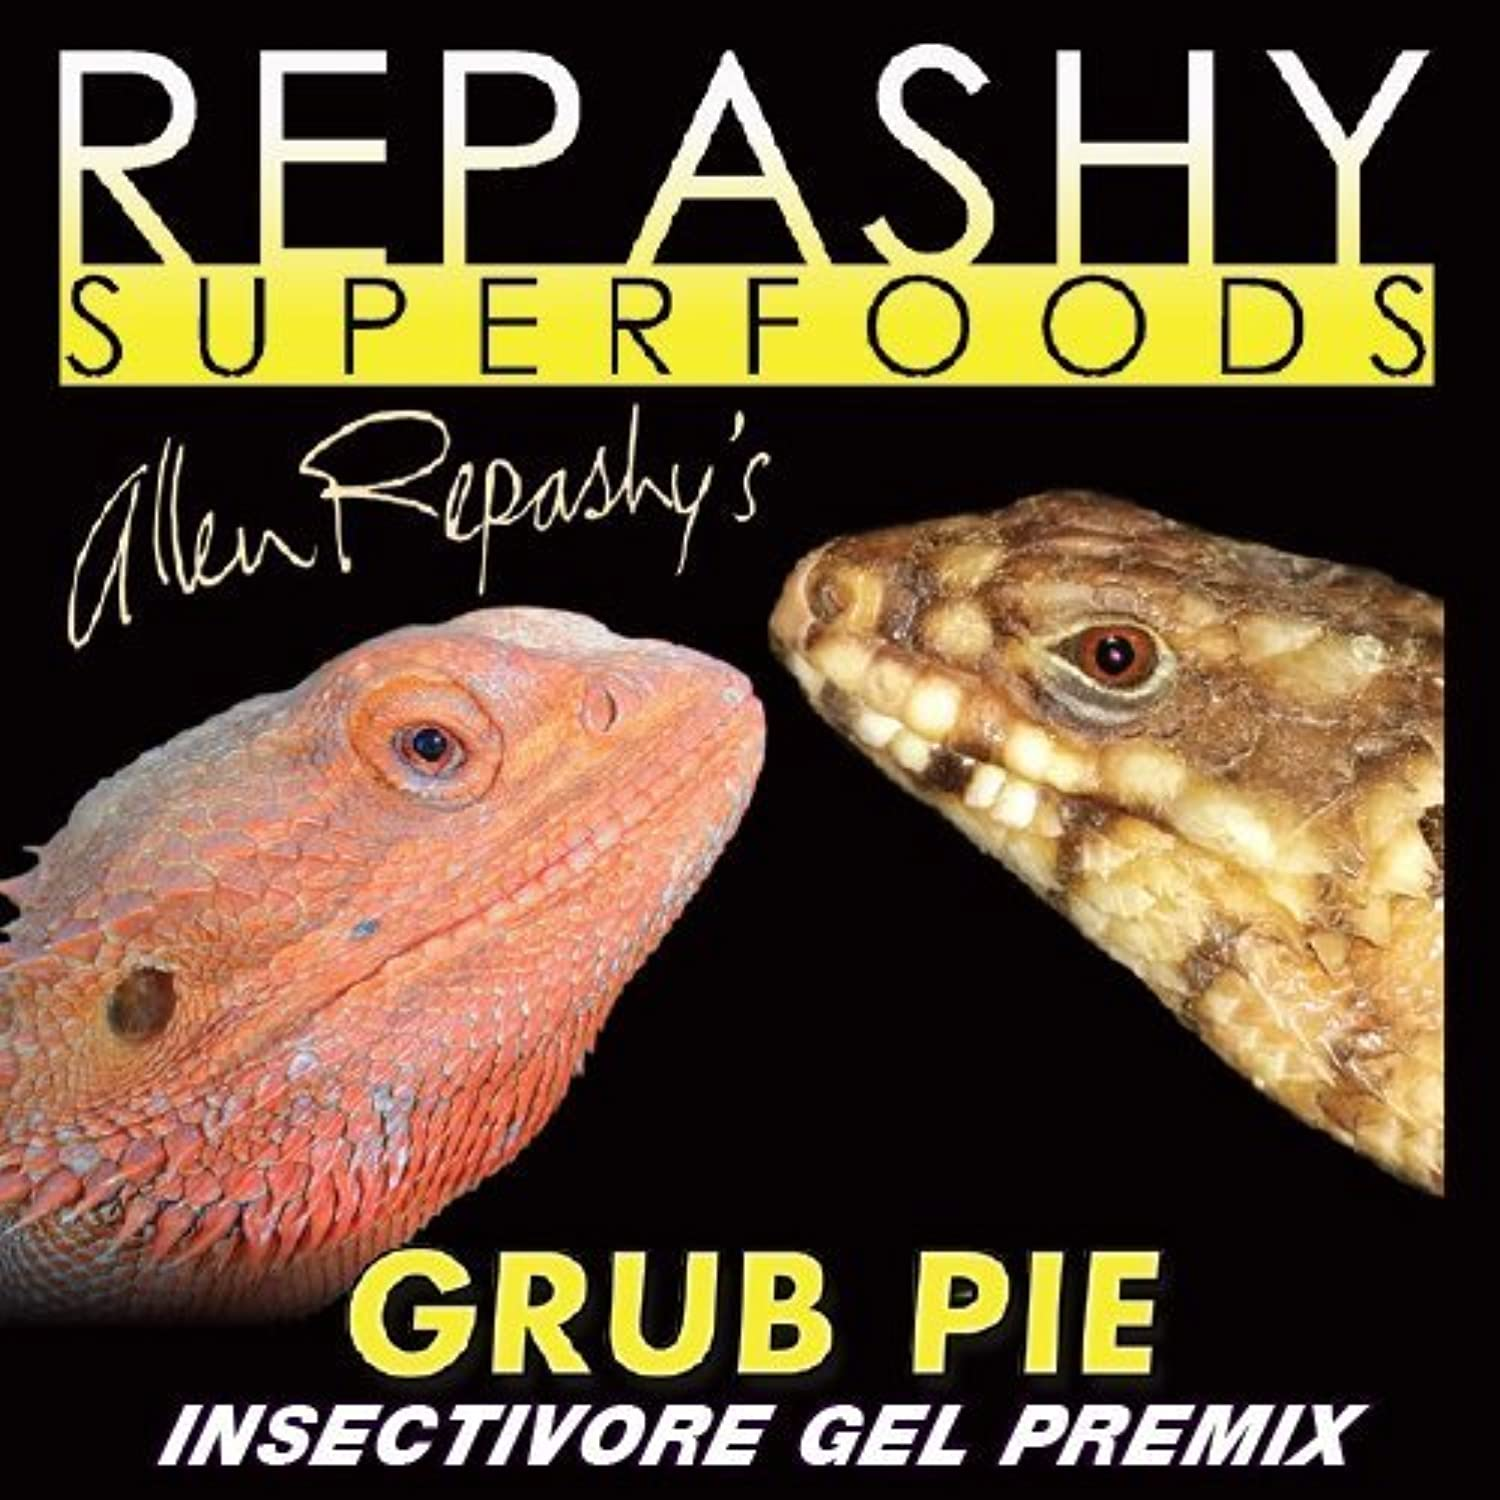 Repashy Grub Pie Insectivore Diet Gel Premix (Reptile) All Sizes 12 Oz (3 4 lb) 340g JAR by Repashy Ventures Inc.